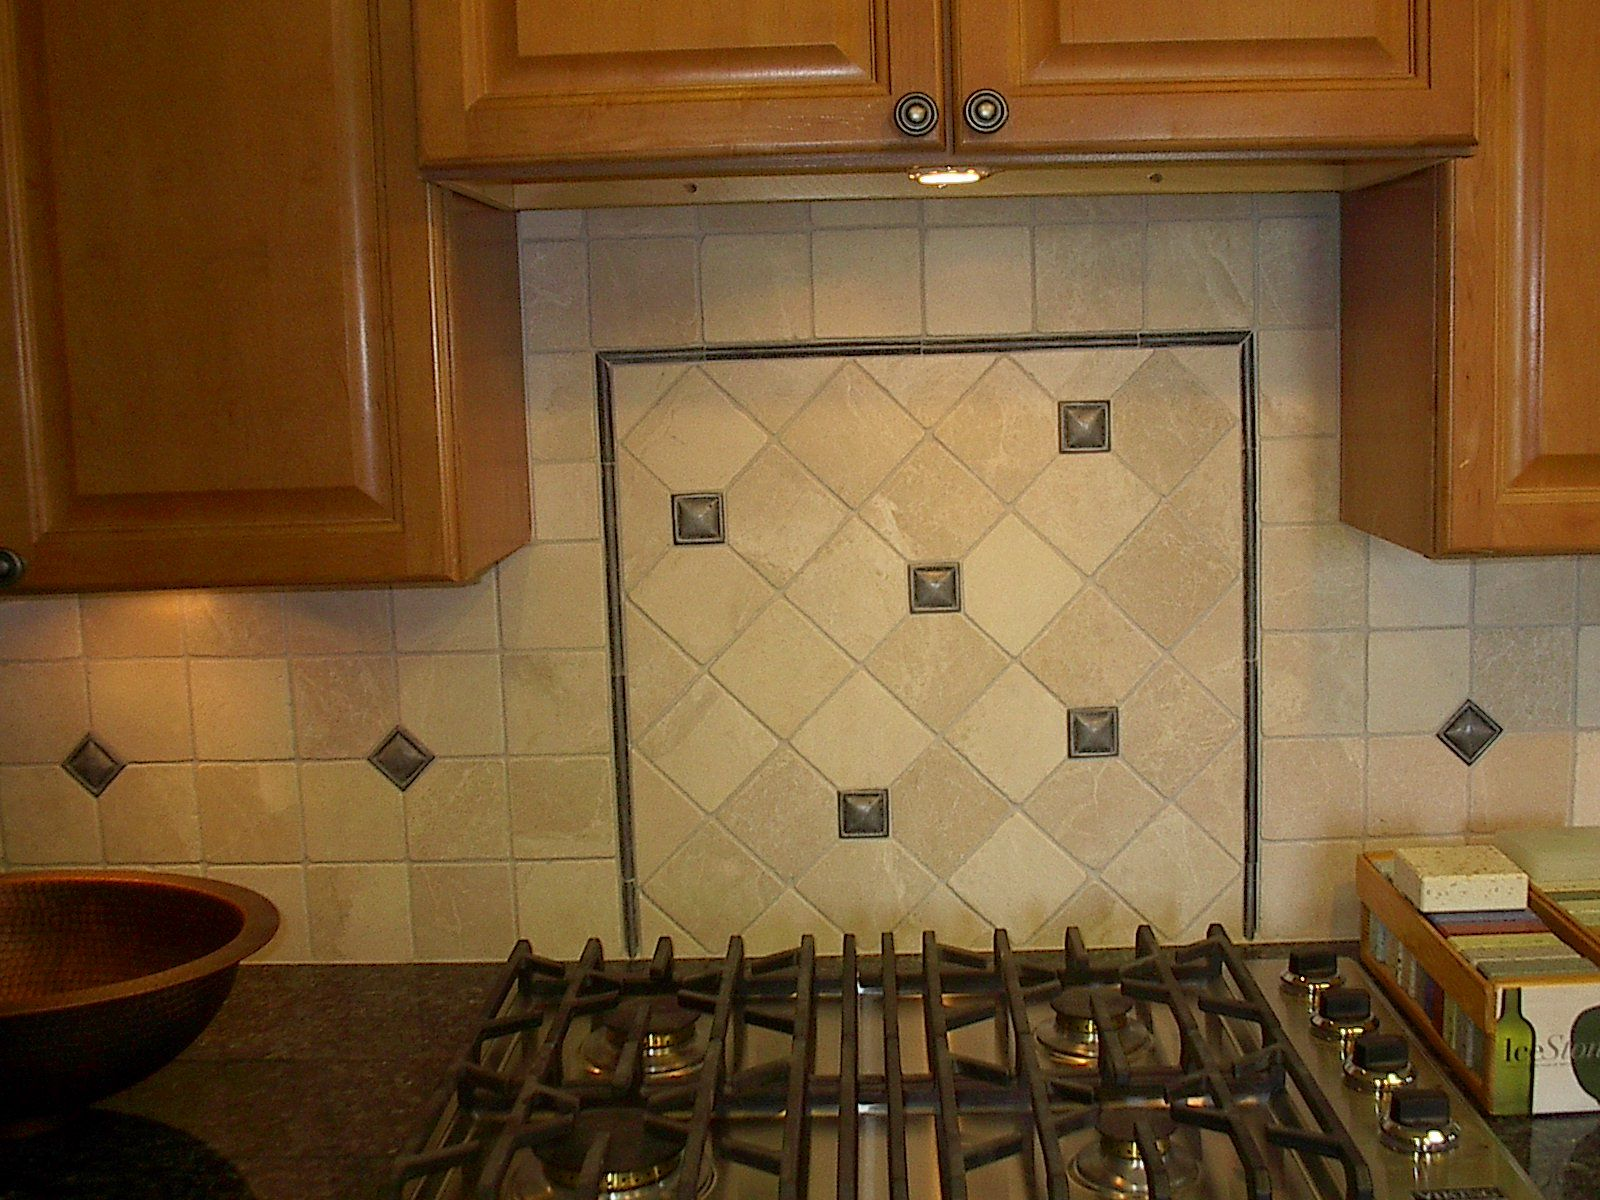 Tile Backsplash Photos Decor Classy Design Ideas